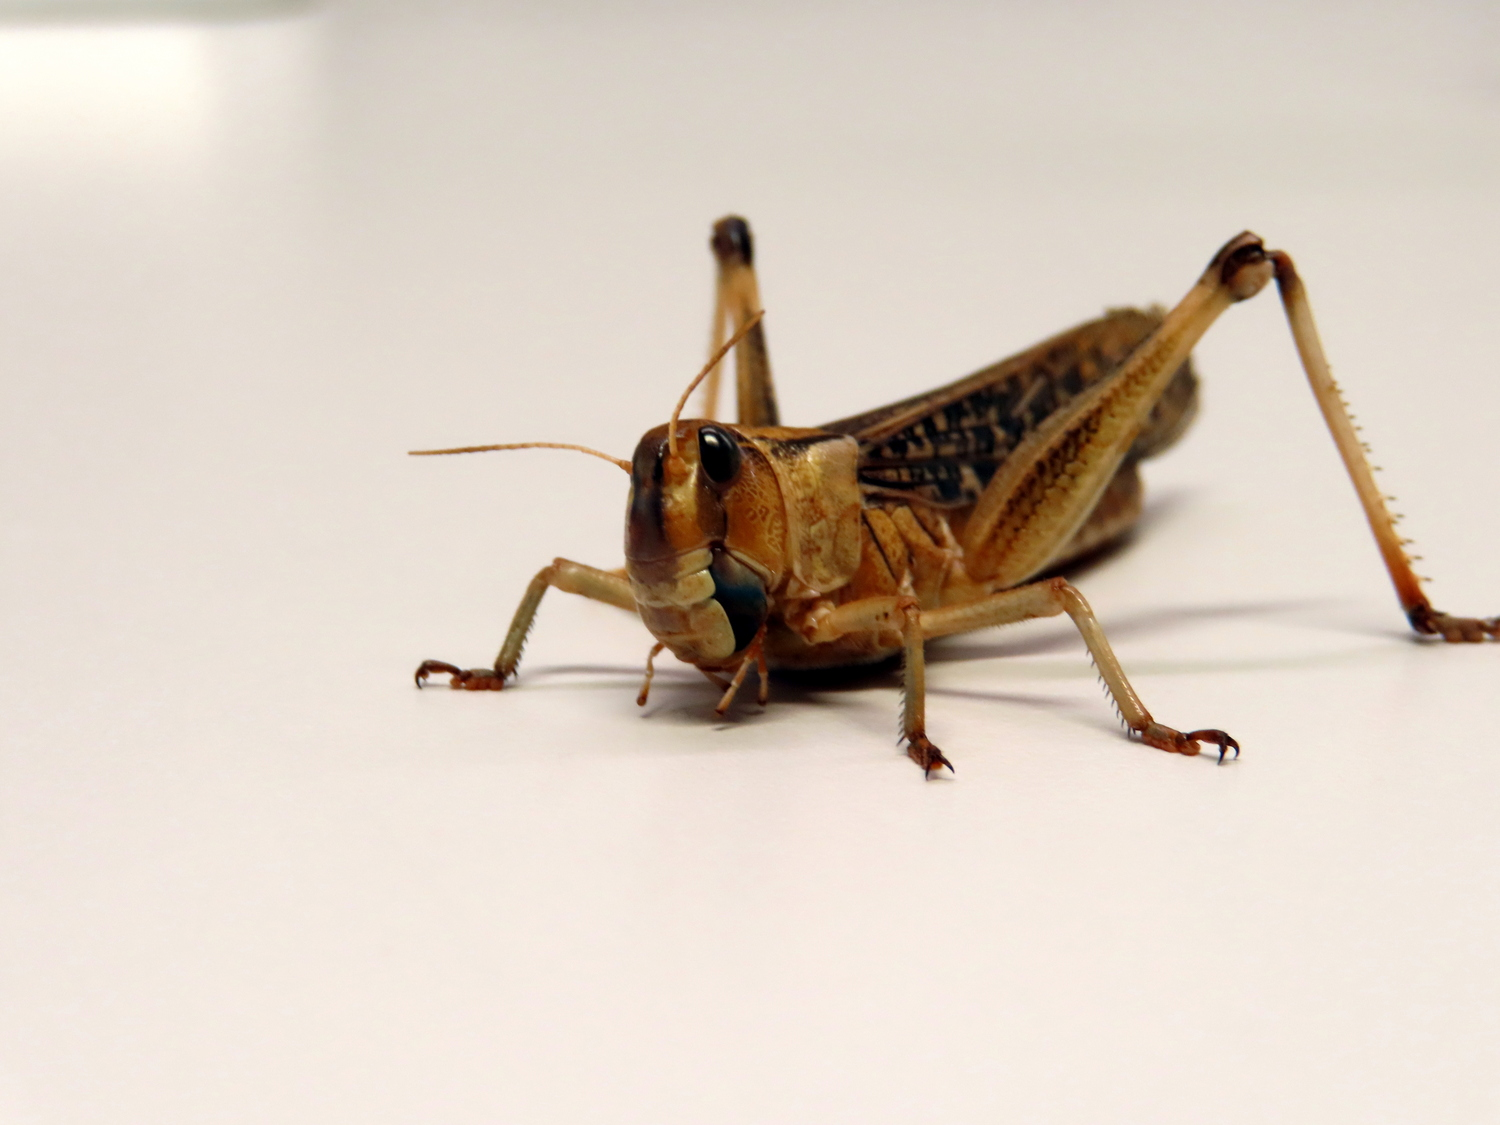 The research team was able to identify an alternative EPO receptor in migratory locusts